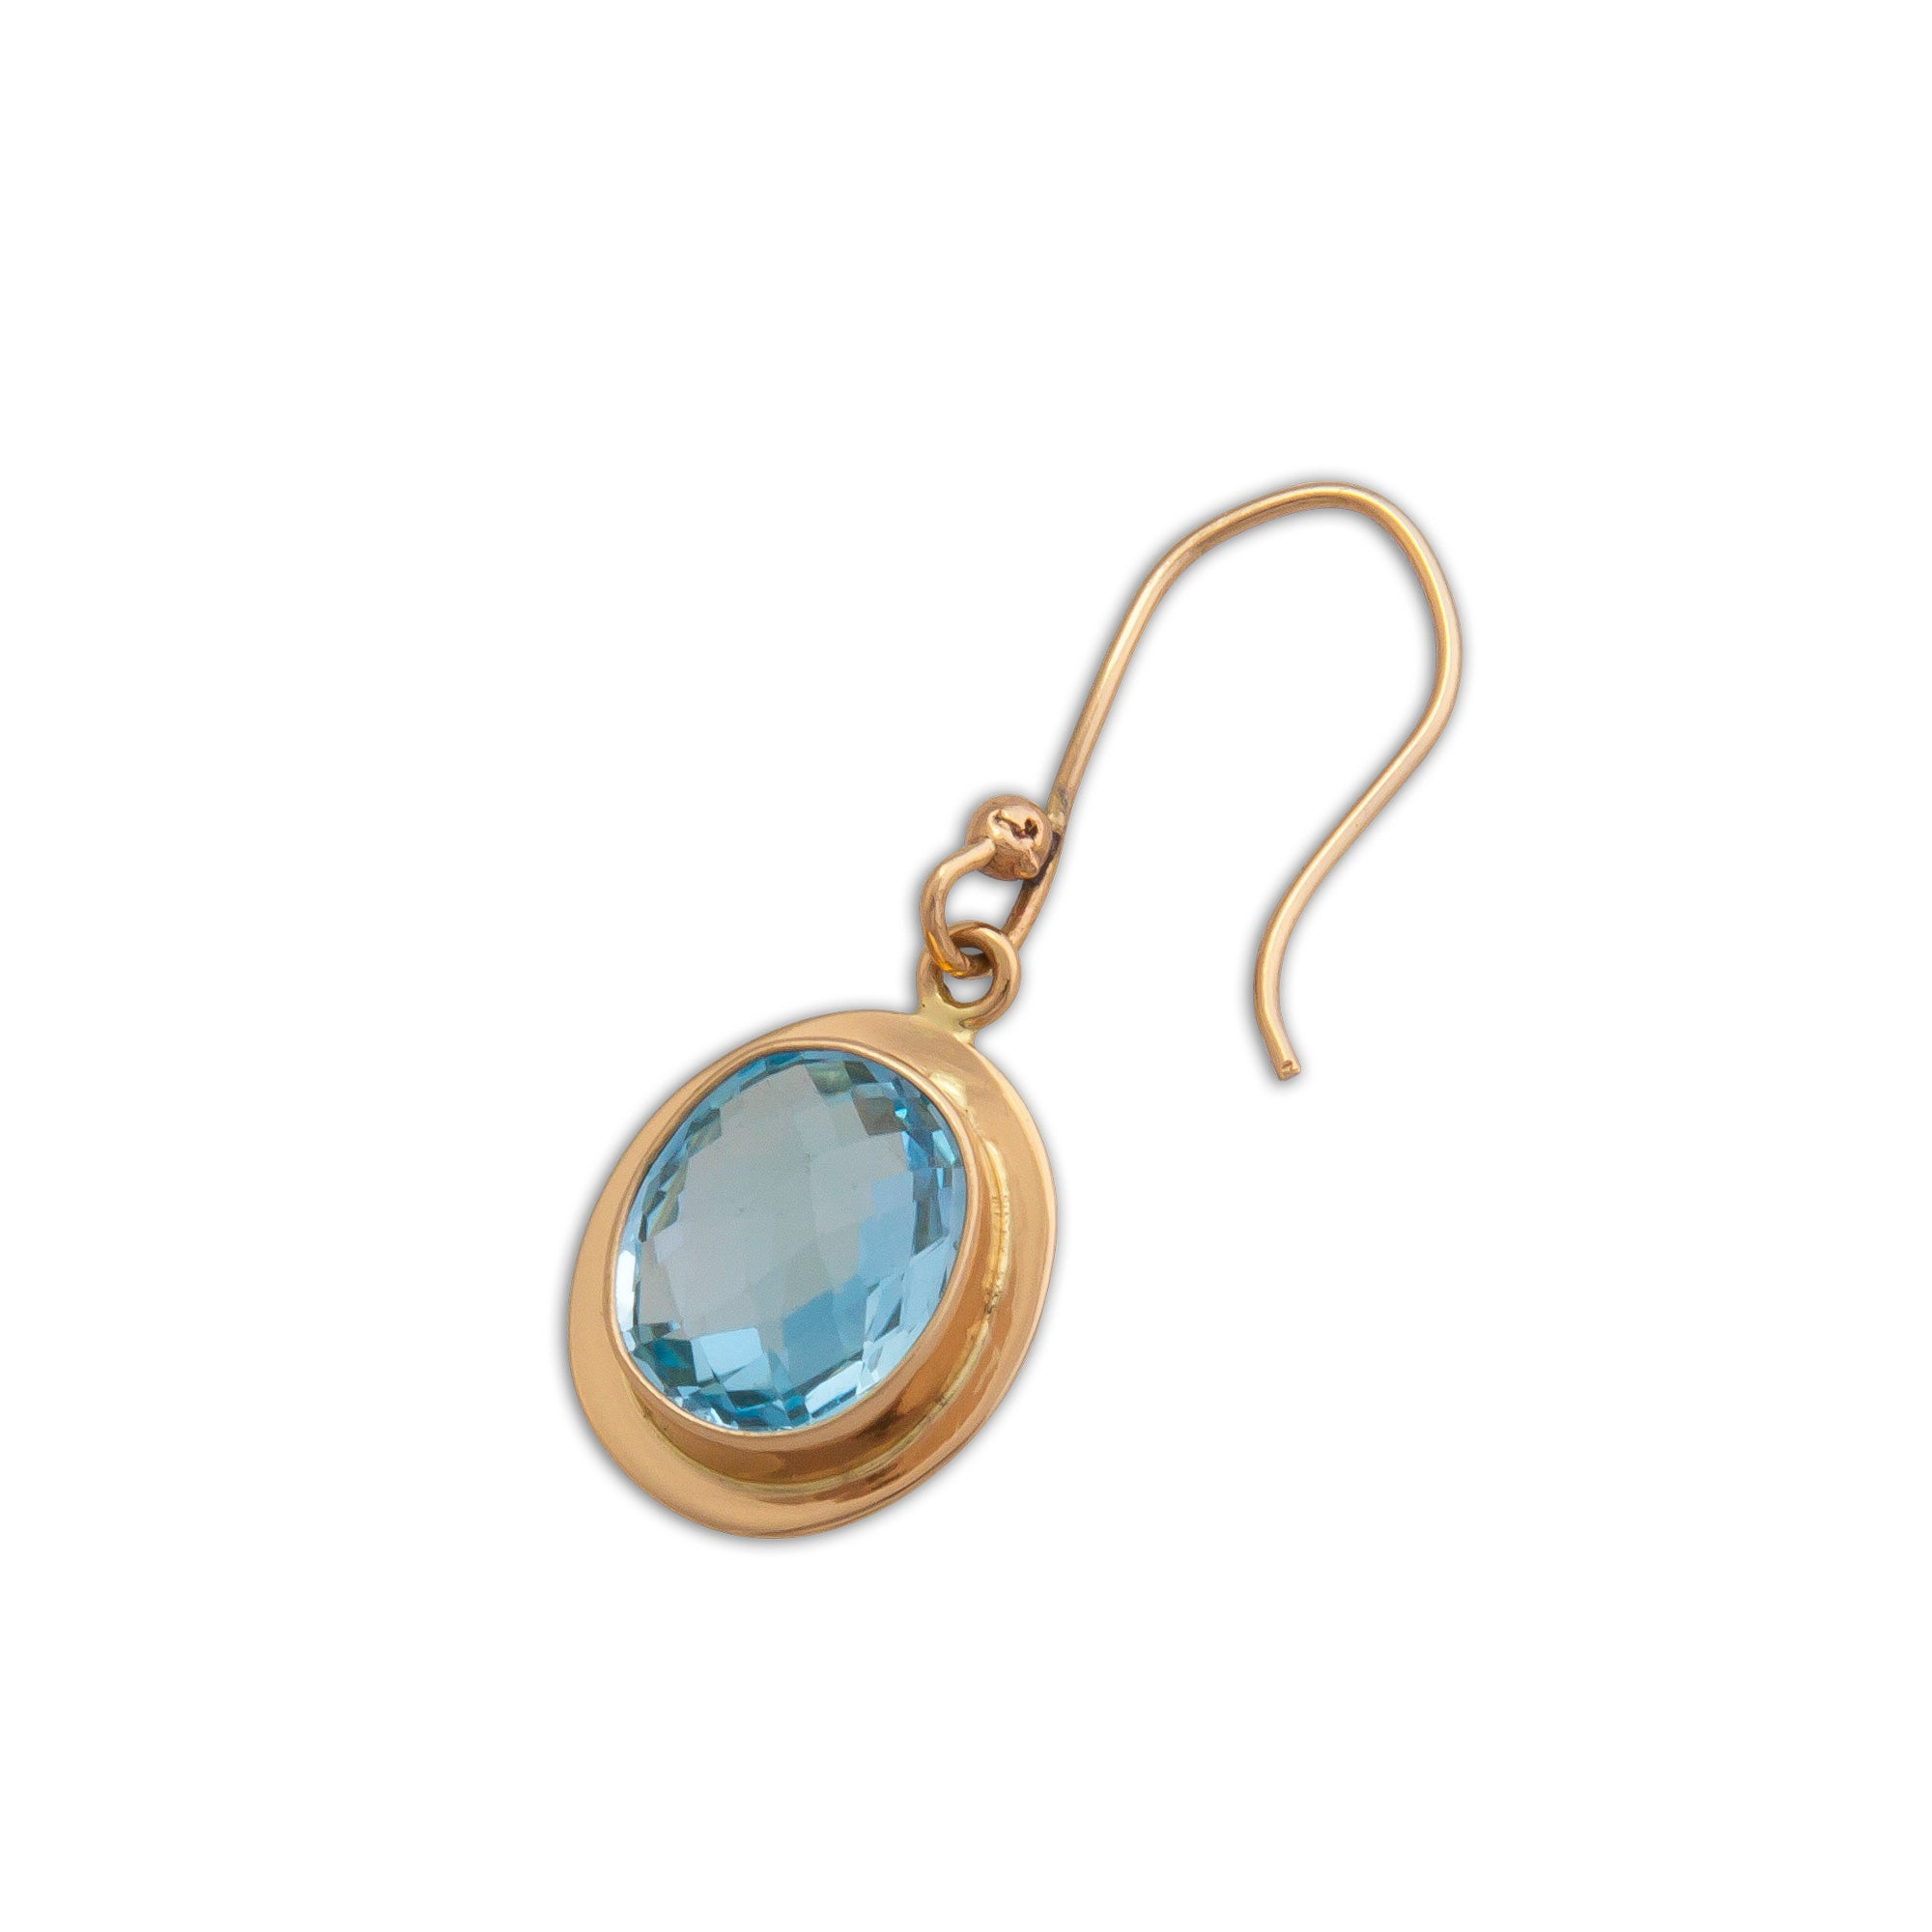 Alchemia Blue Topaz Drop Earrings with Detailed Edge